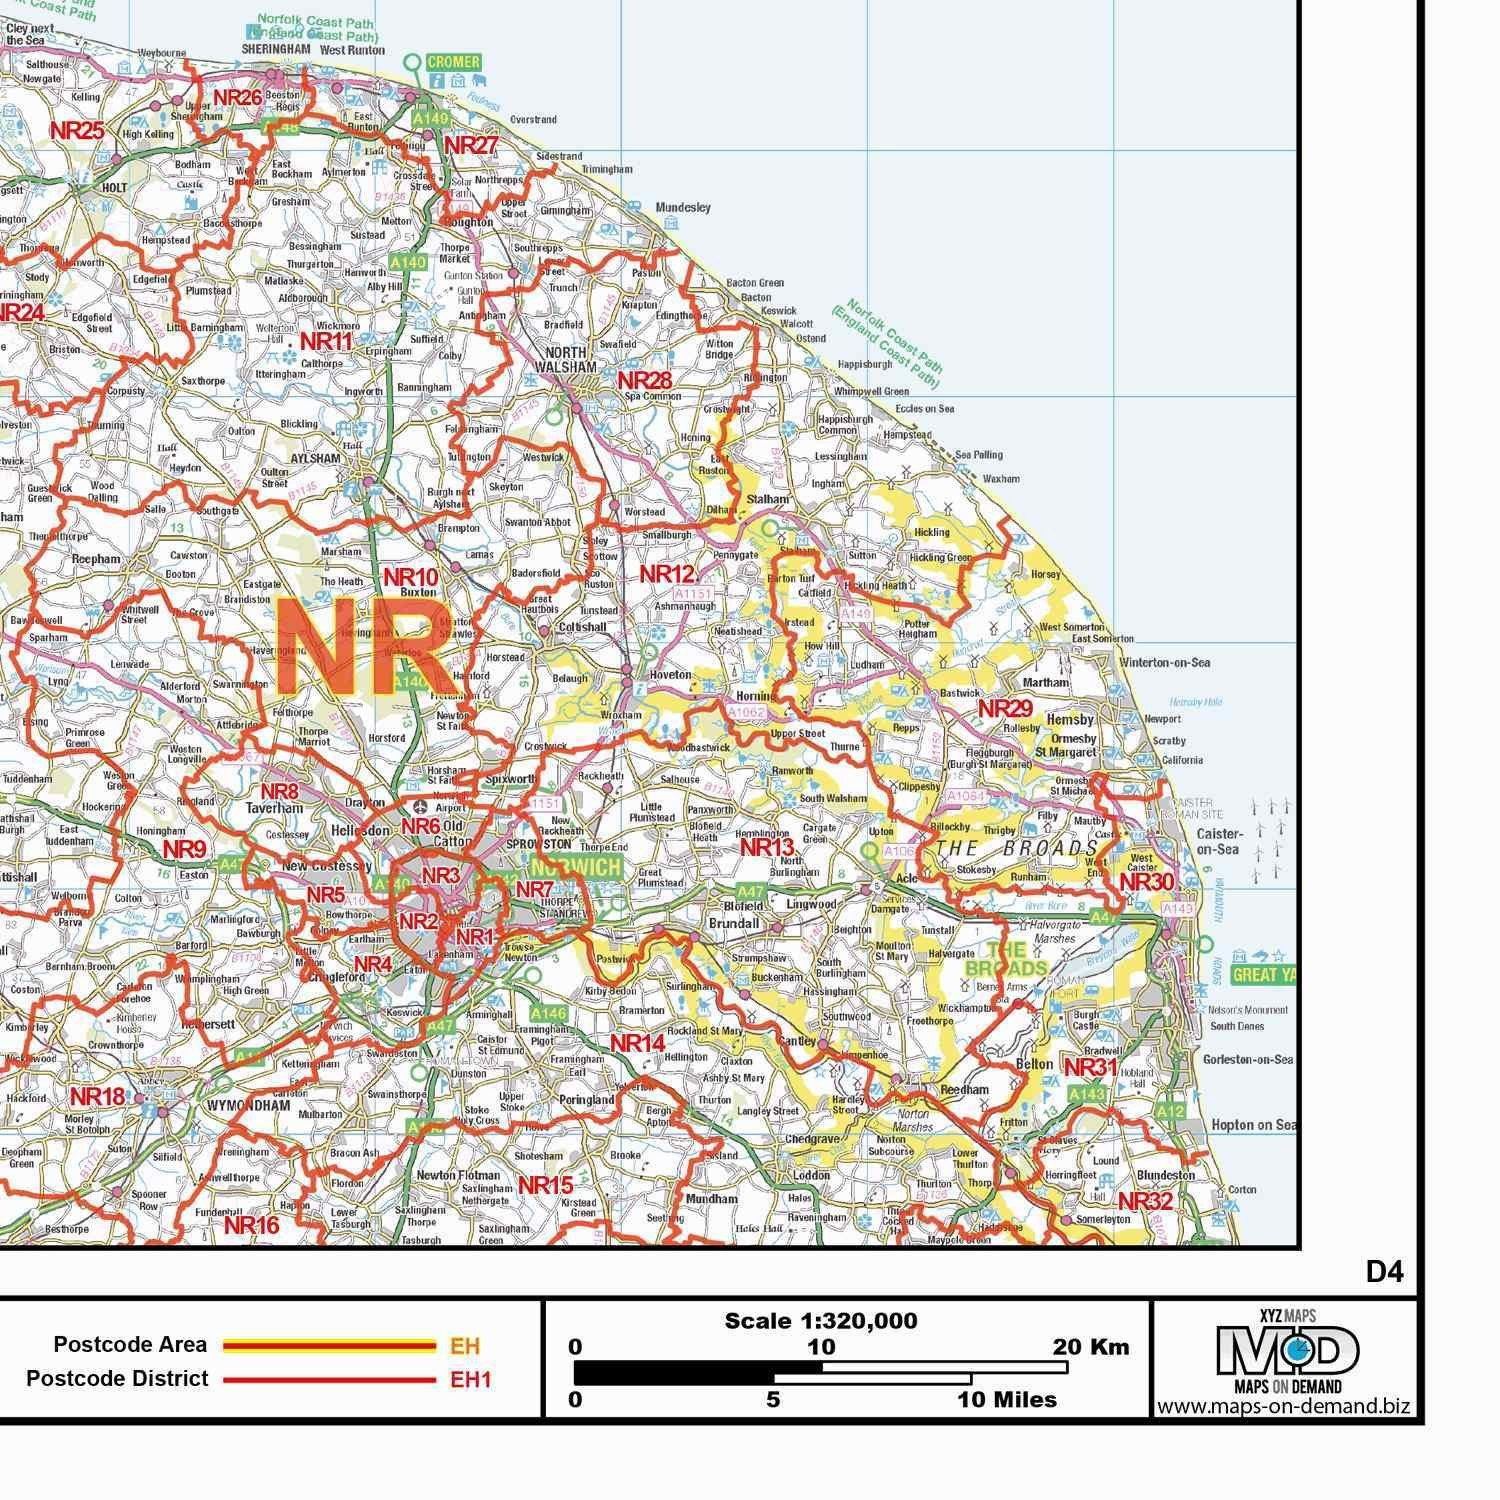 Map Of Northern England.Northern England Postcode District Map Gif Or Pdf Download D4